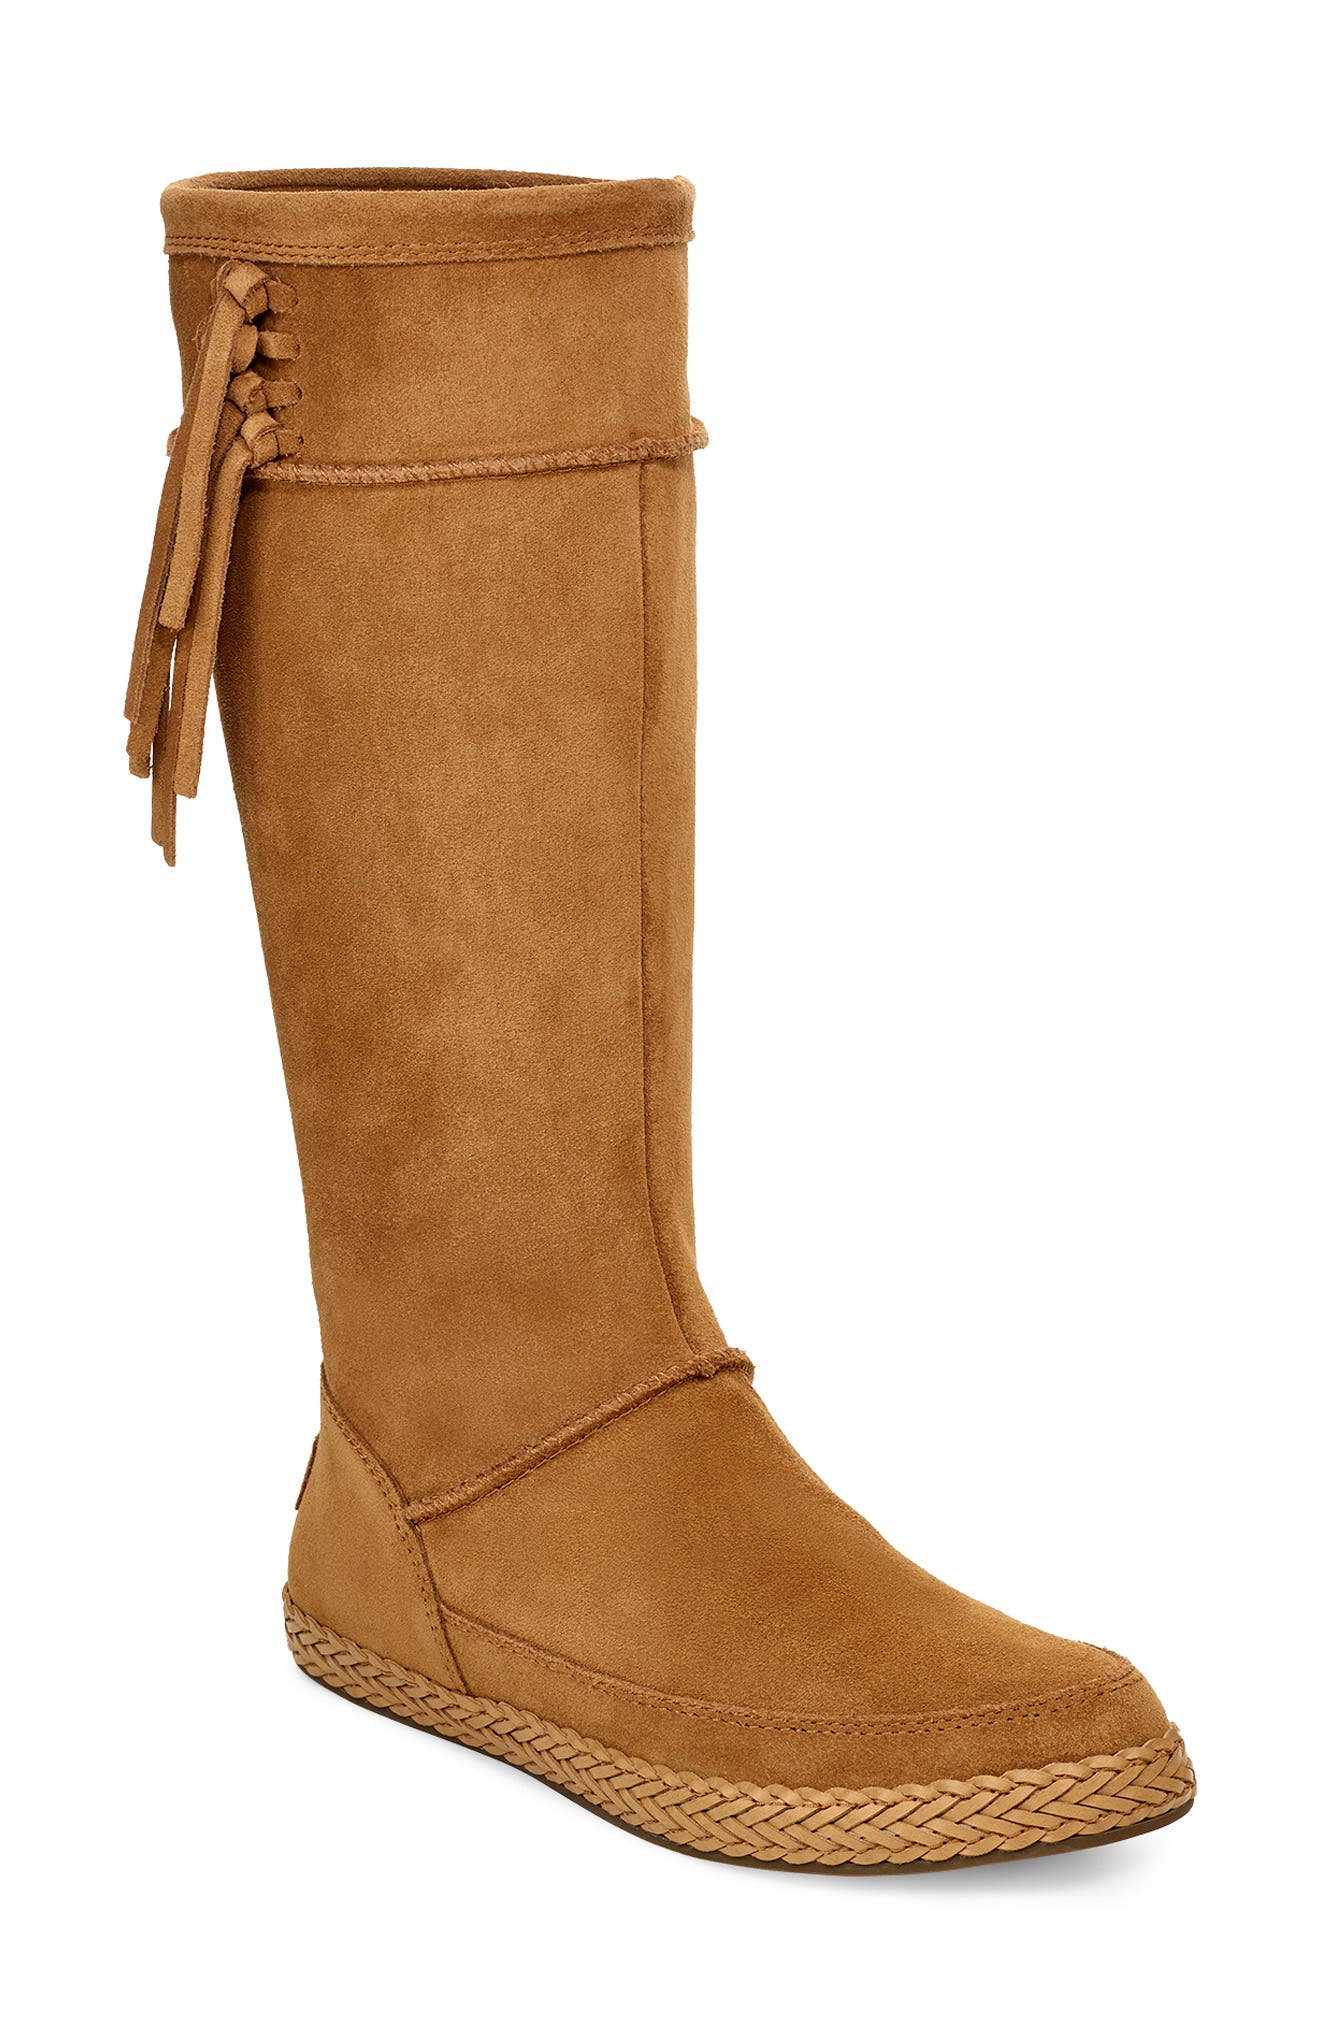 Vintage Boots- Buy Winter Retro Boots Womens UGG Emerie Tall Boot Size 5.5 M - Brown $149.95 AT vintagedancer.com